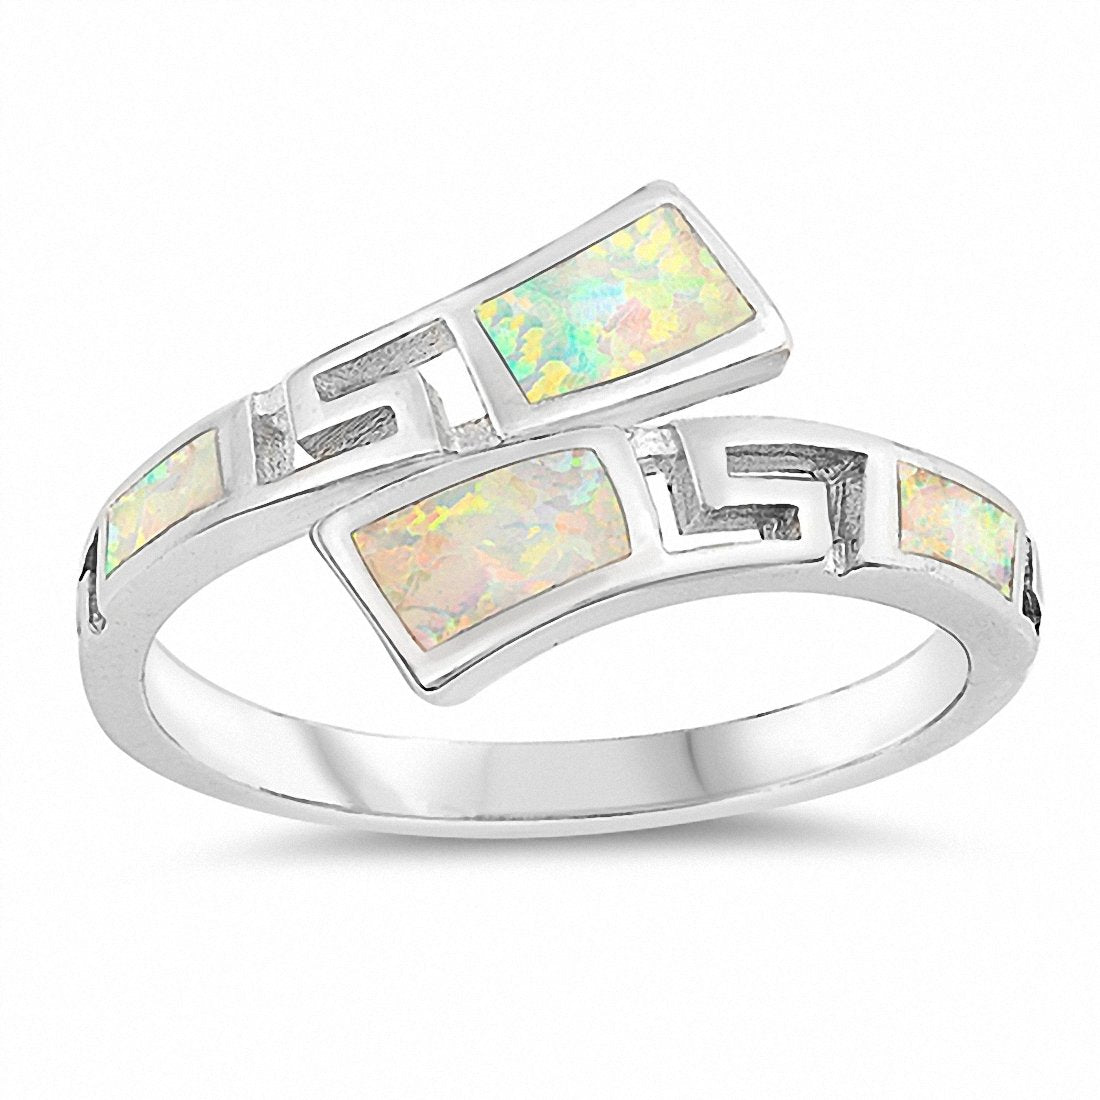 Greek Key Band Ring Created Opal 925 Sterling Silver Choose Color